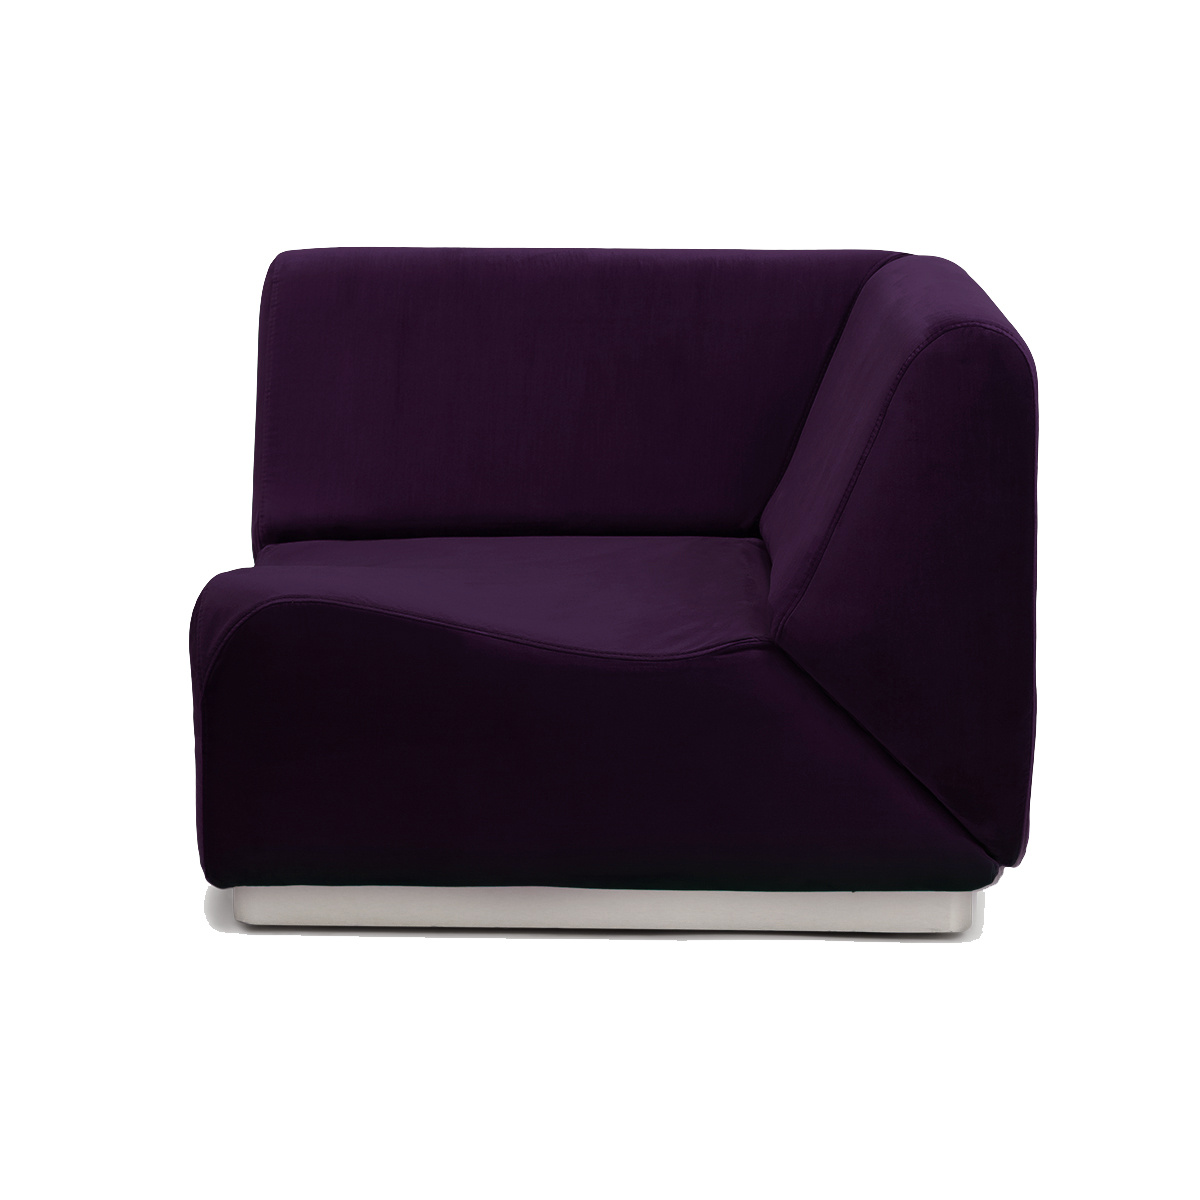 Rotondo Corner Fireside Chair in Plum Velvet